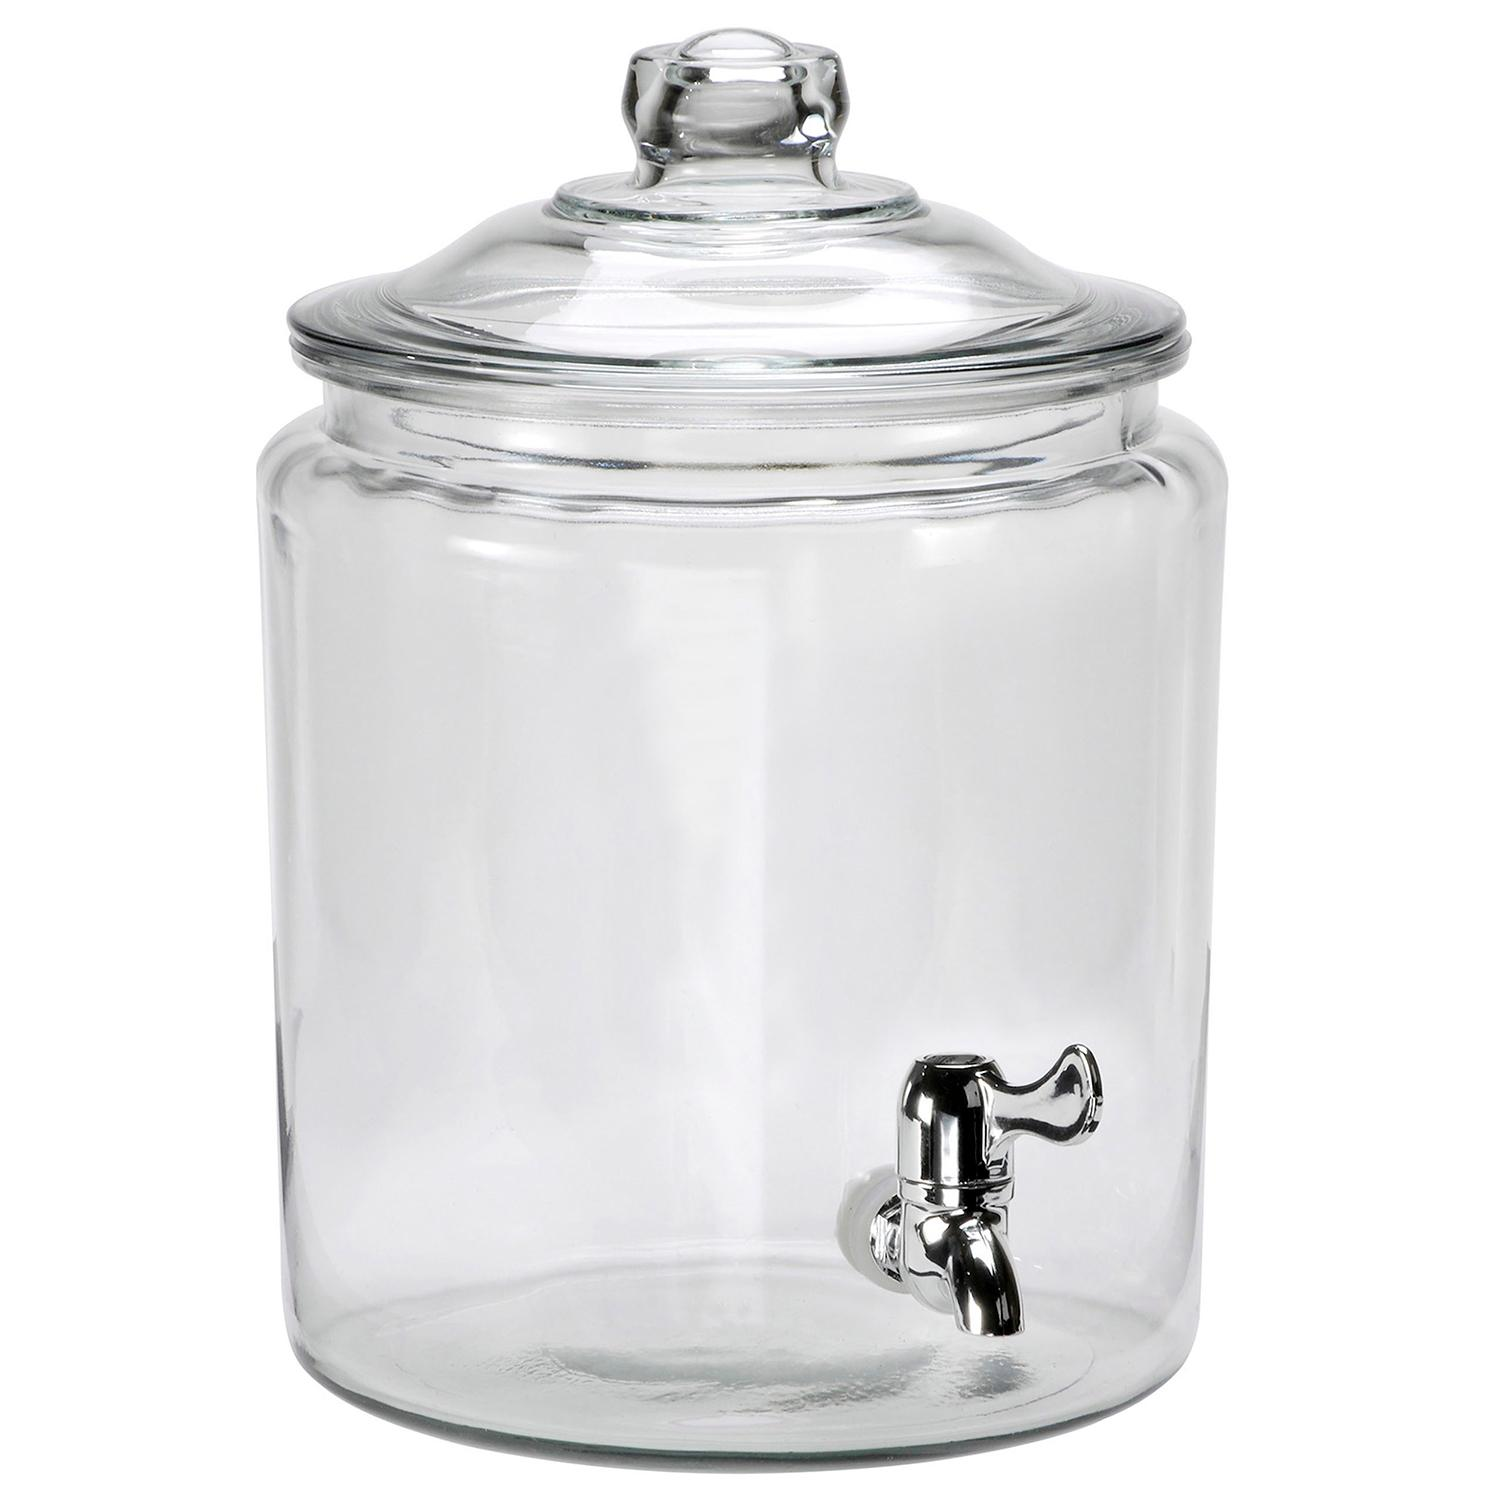 anchor hocking heritage hill glass beverage dispenser with spigot 2 gallon iced. Black Bedroom Furniture Sets. Home Design Ideas